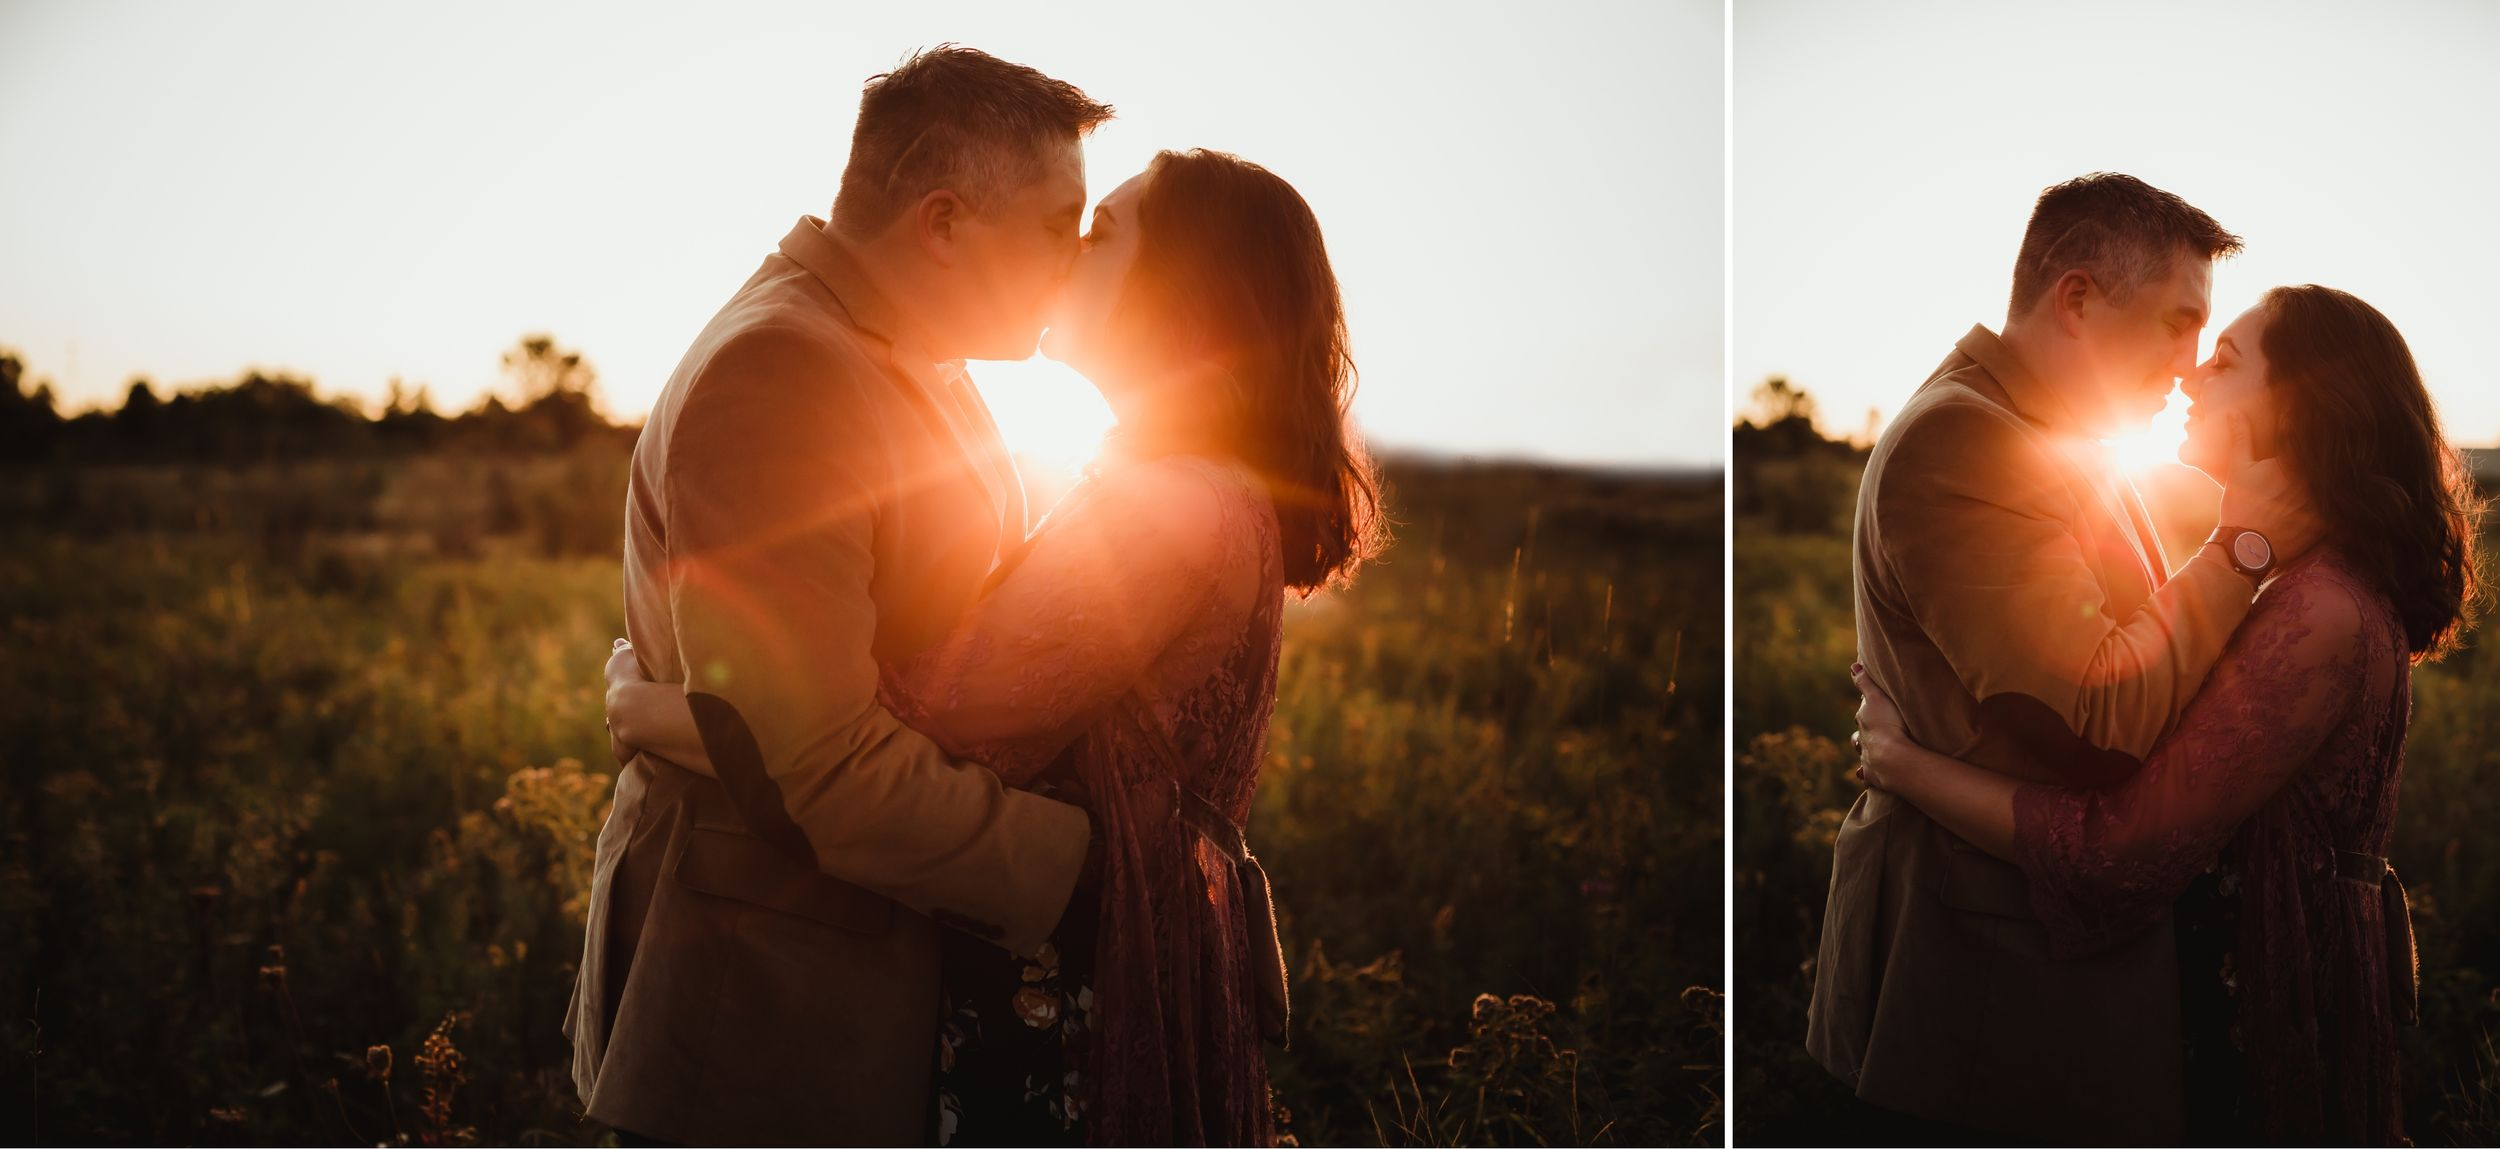 Husband and wife embracing and kissing with a golden sun flare between them.